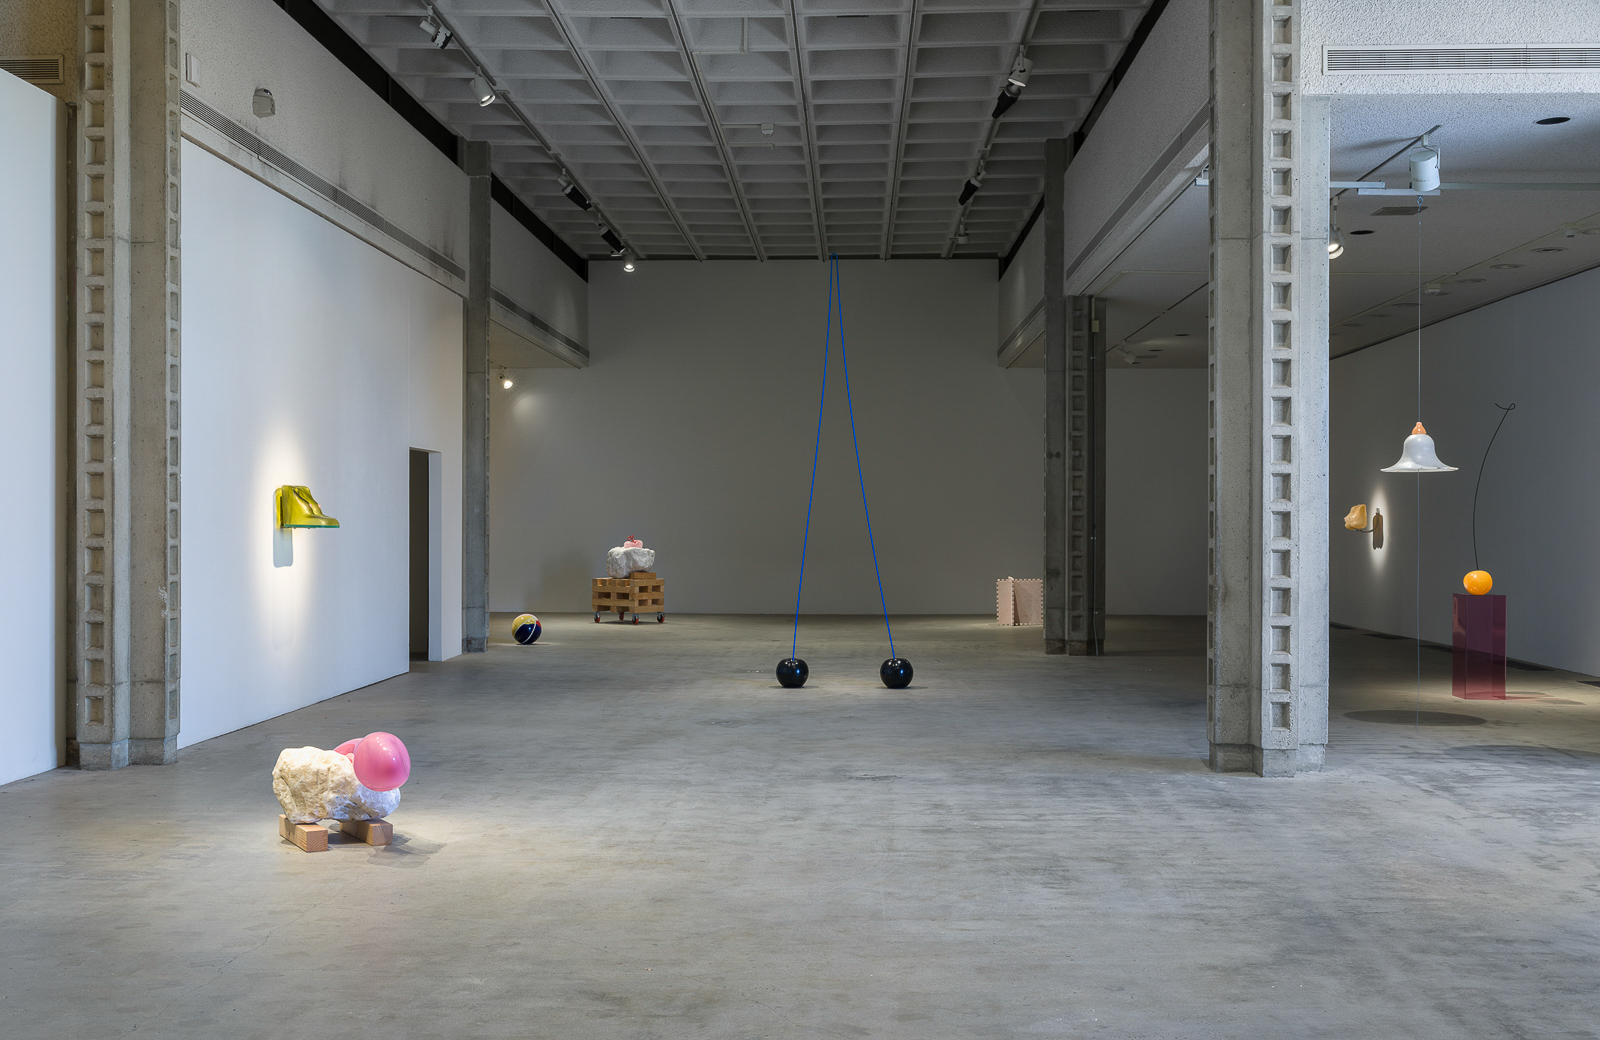 This is a color photograph of an installation view of artworks by Nevine Mahmoud. Pictured left to right are: a sculpture titled HOT TOY STRADDLE, which is a large white boulder with a pink object placed on top and sitting on the floor; a sculpture titled Bust (lagoon) installed on the adjacent wall, which resembles a bare female chest made from hand blown glass and resin in a yellow-green color; a sculpture titled Beach Ball IV in the background, which is a spherical ceramic work, cracked in a few places, painted with pink, yellow, red, and blue glaze made to appear like an inflated beach ball; a sculpture titled Three Components, which is a large white boulder with a light pink object placed on top and sits on top of a wooden crate; a sculpture titled Aileen & Elvis, which resembles a two-stemmed black cherry with blue stem; a sculpture titled Castle component #1, which resembles two, light pink colored puzzle pieces criss-crossed; a sculpture installed on the adjacent wall titled Babette, which resembles a bare female chest in a peach-tan skin color made from hand blown glass, resin, and aluminum; a sculpture titled Sherry which depicts a bright orange-red colored cherry shaped sculpture placed on top of a fuschia colored plexiglass pedestal; and a hung sculpture titled Breast shade, which resembles a bare female breast made from alabaster and pigmented resin.